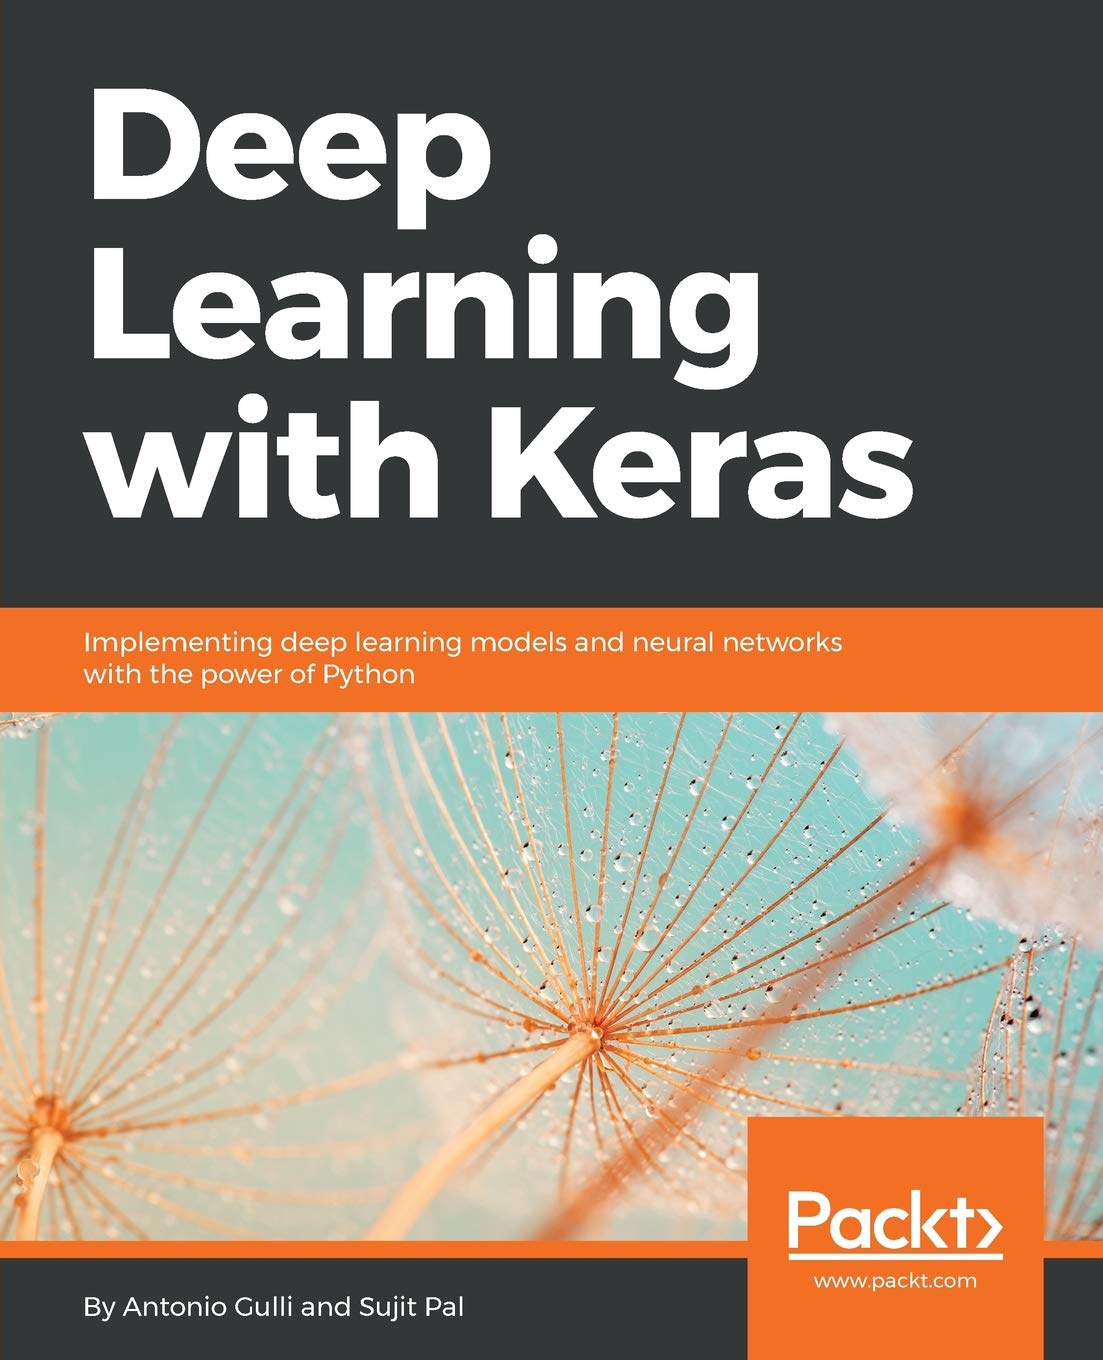 Deep Learning with Keras: Implementing deep learning models